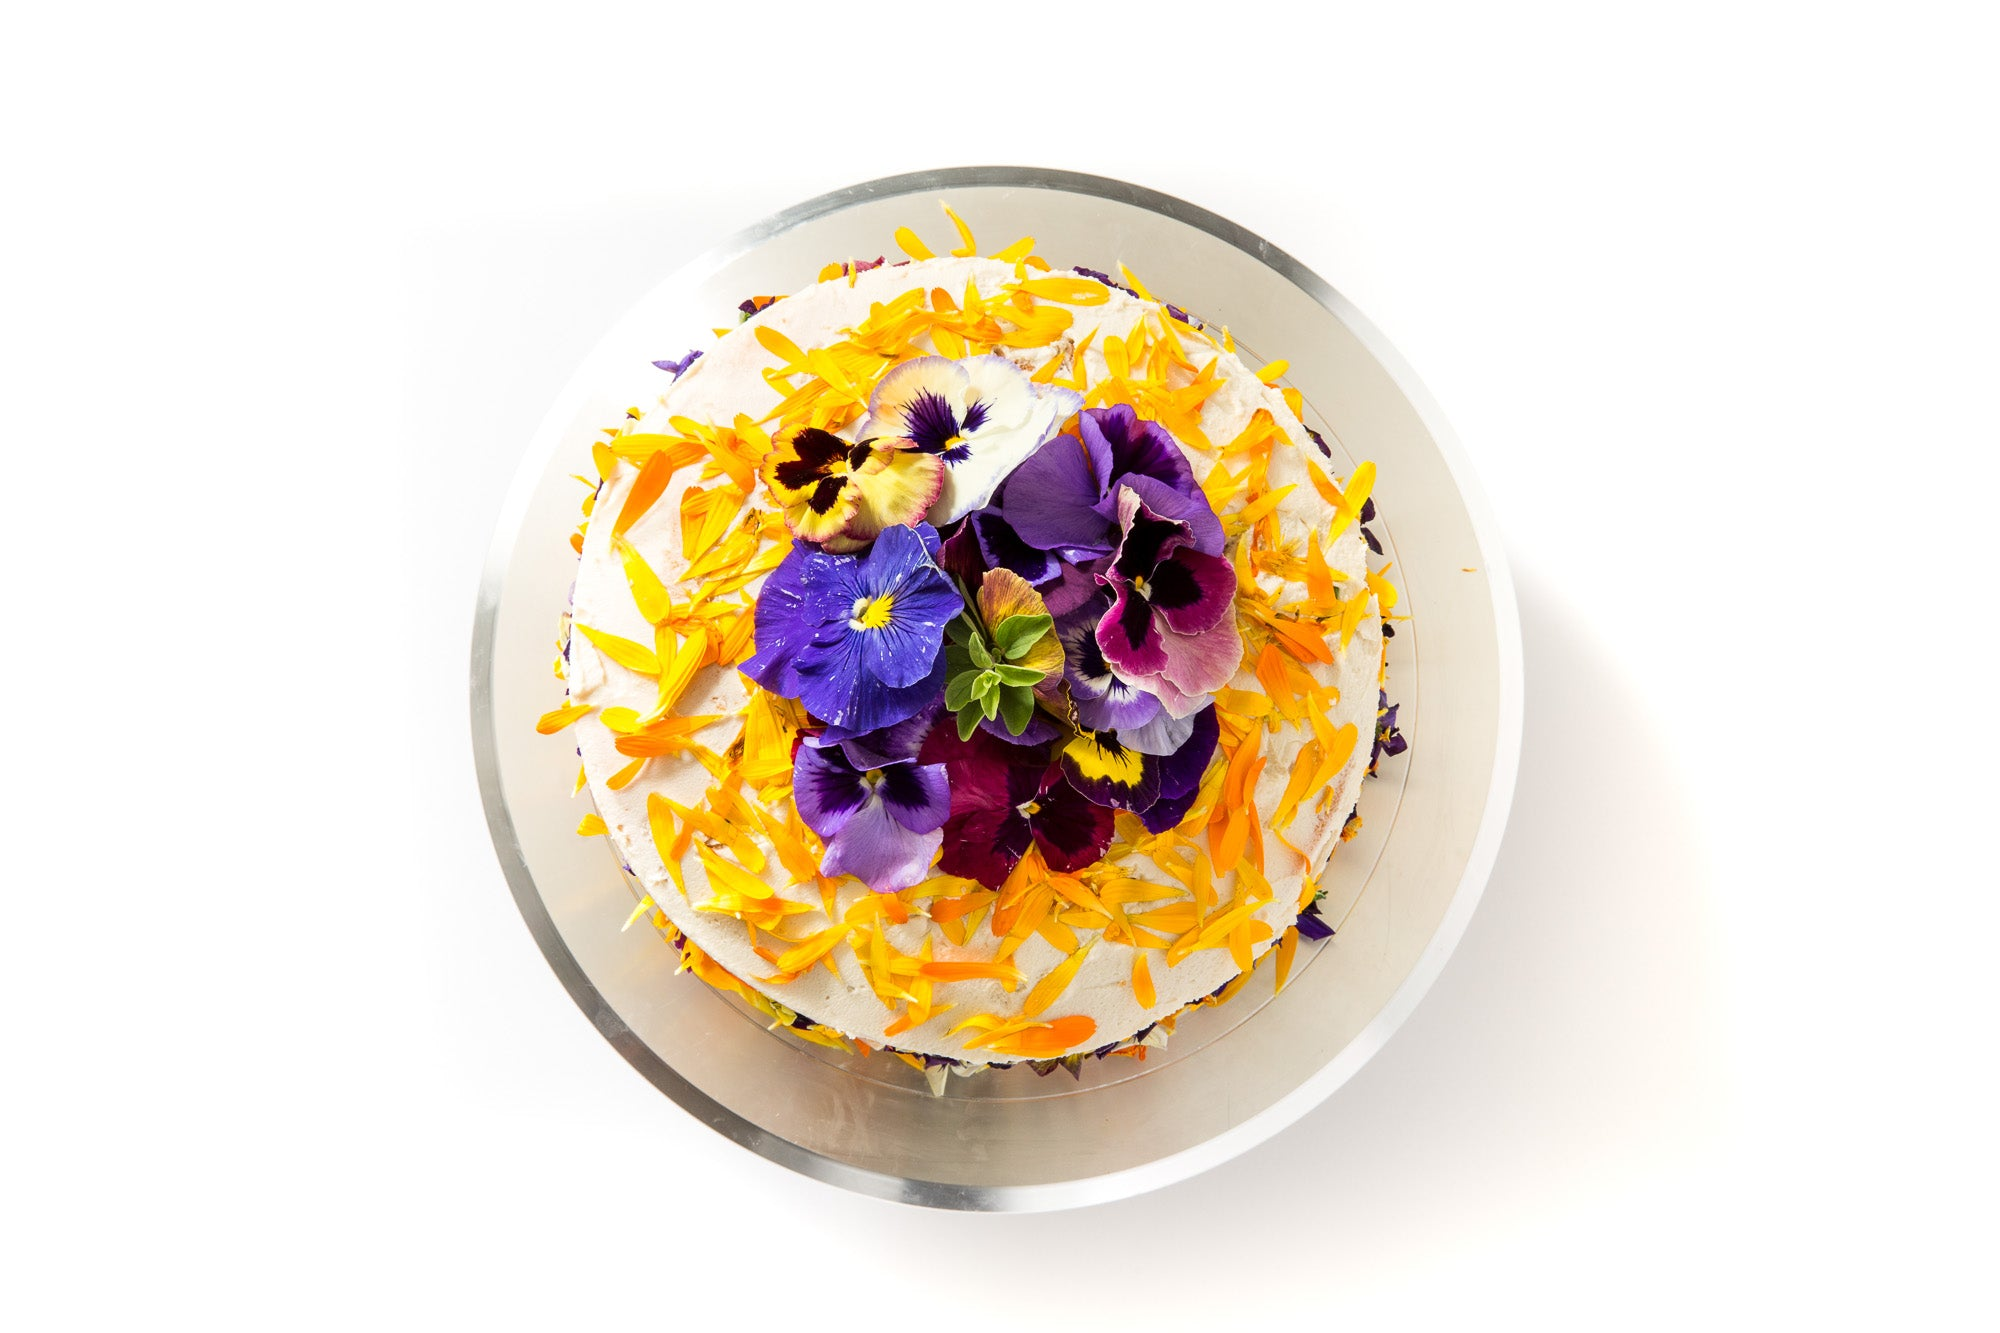 Image of the top of Miss Jones Baking Co Floral Bloom Layer Cake on a cake stand